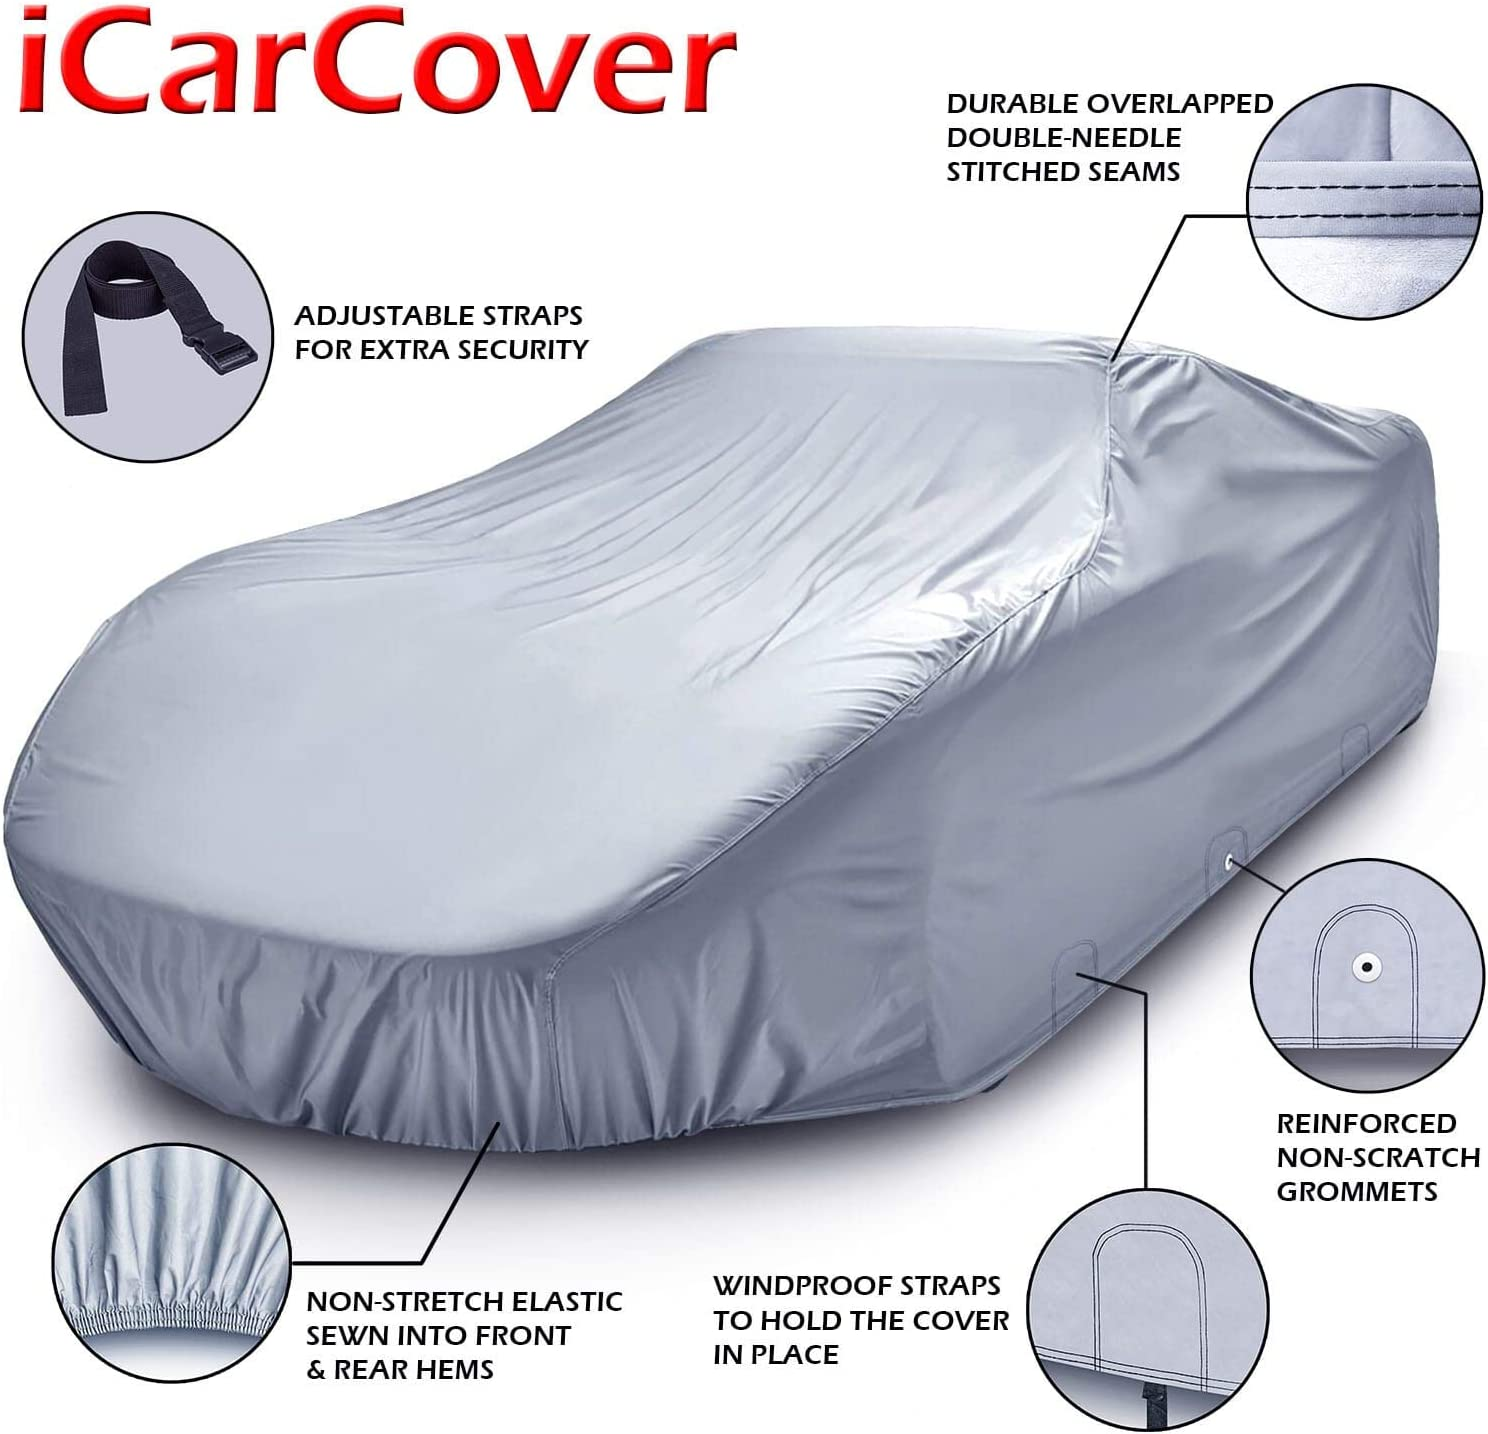 iCarCover for Cars Up to 204 All-Weather Waterproof Snow UV Heat Protection Dust Scratch Resistant Windproof Weatherproof Breathable Automobile Indoor Outdoor Auto Car Cover 7-Year Full Warranty